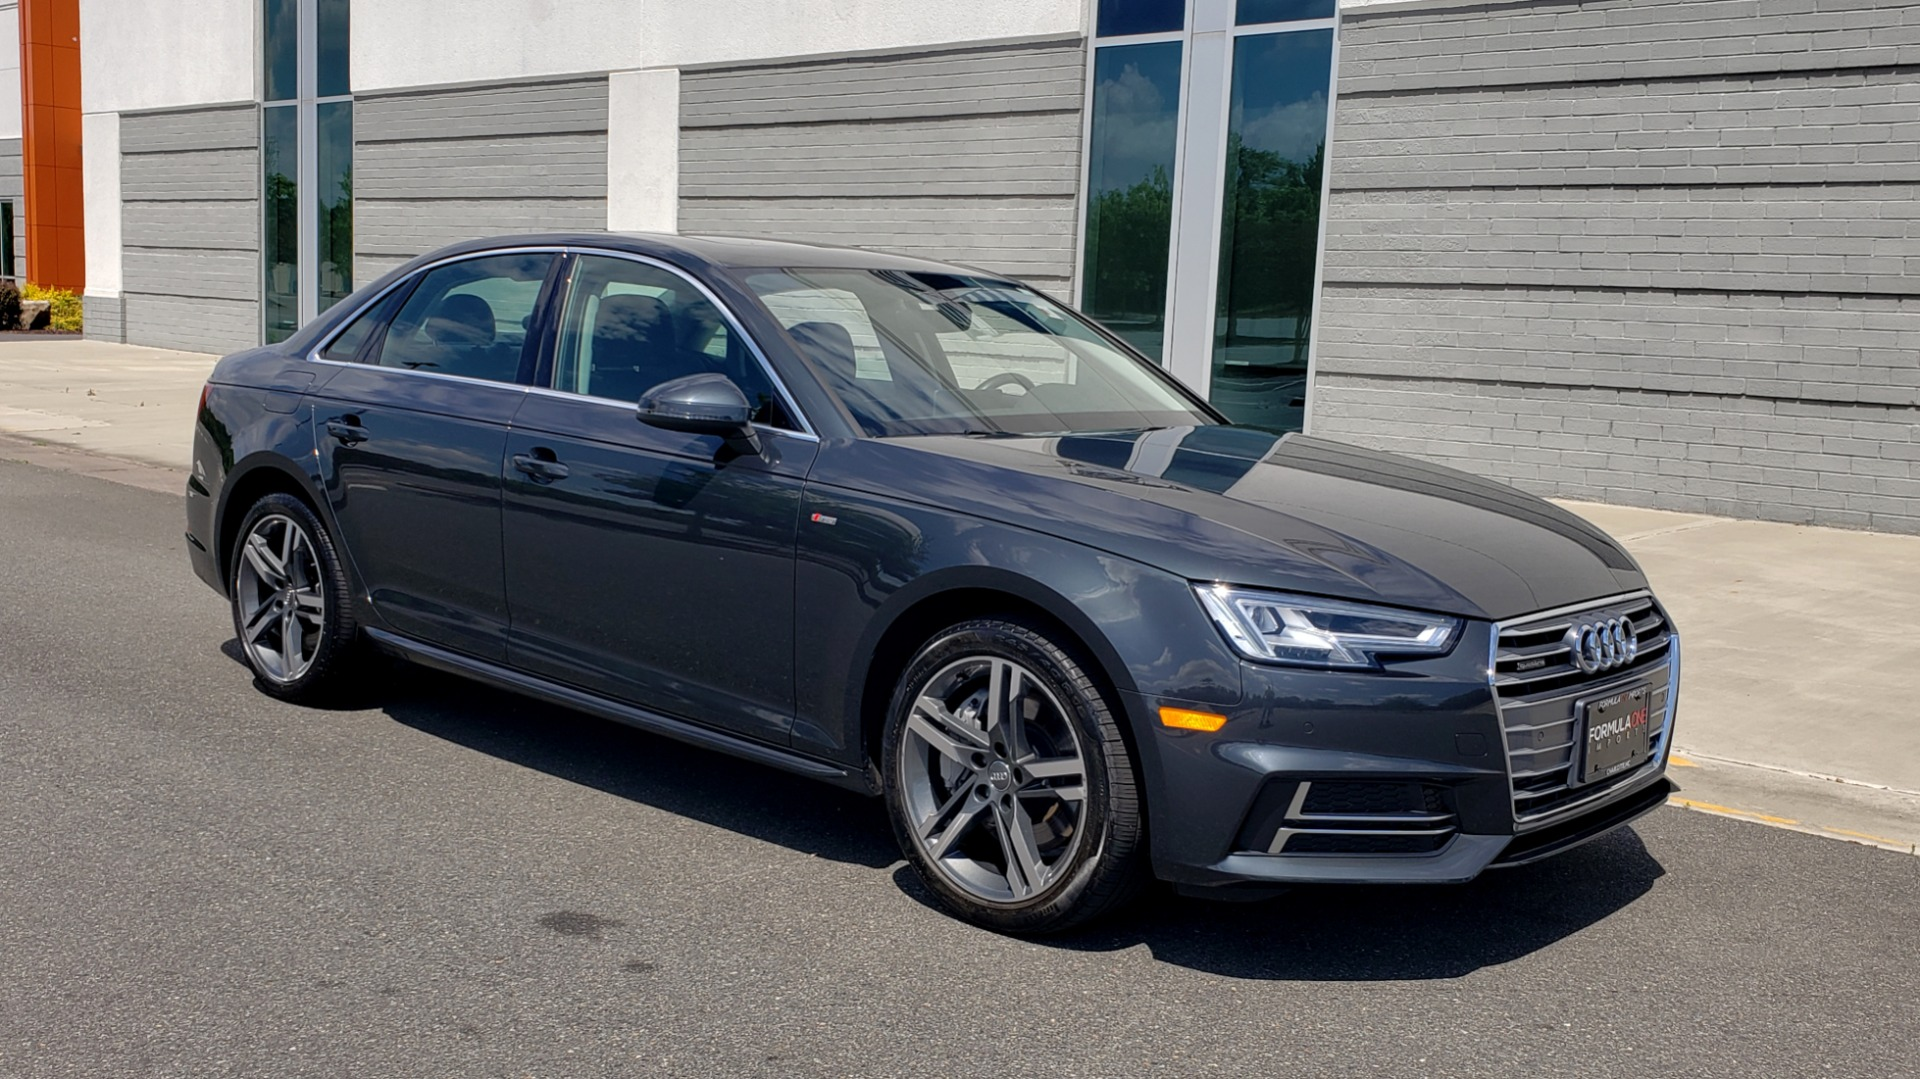 Used 2018 Audi A4 TECH PREMIUM PLUS / NAV / B&O SND / SUNROOF / CLD WTHR / REARVIEW for sale $28,595 at Formula Imports in Charlotte NC 28227 7